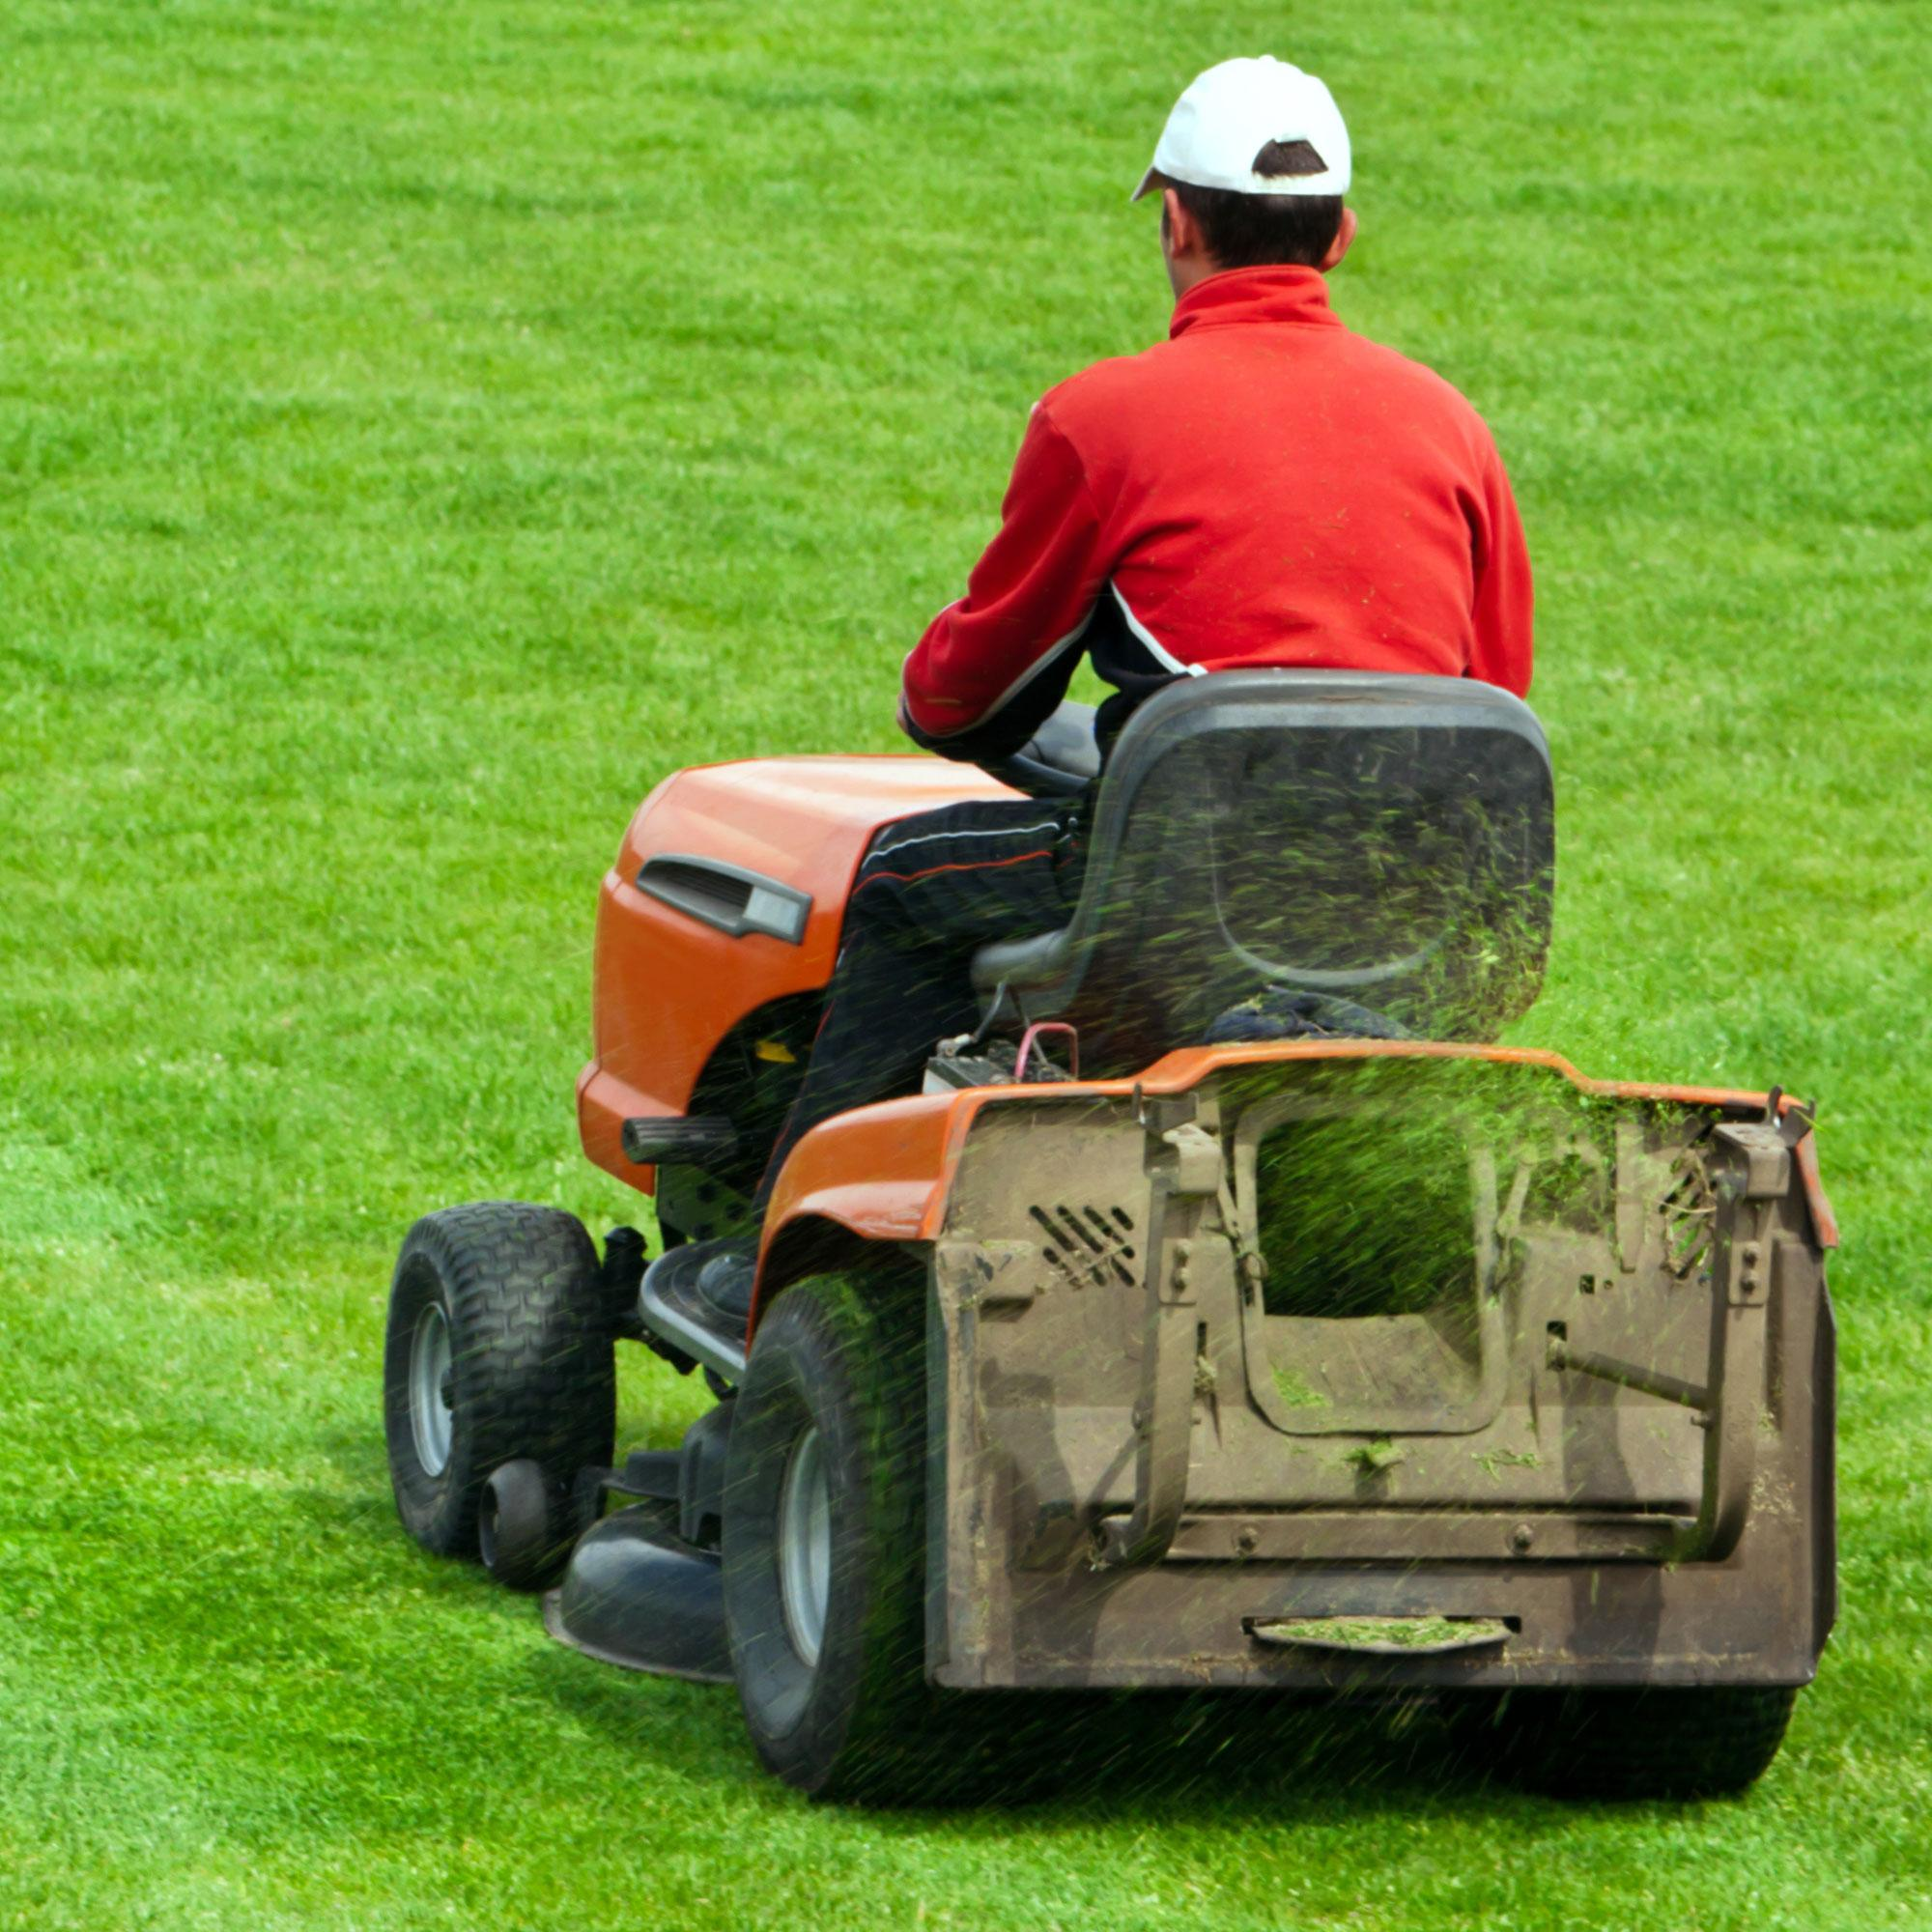 Take Control Of Your Lawn